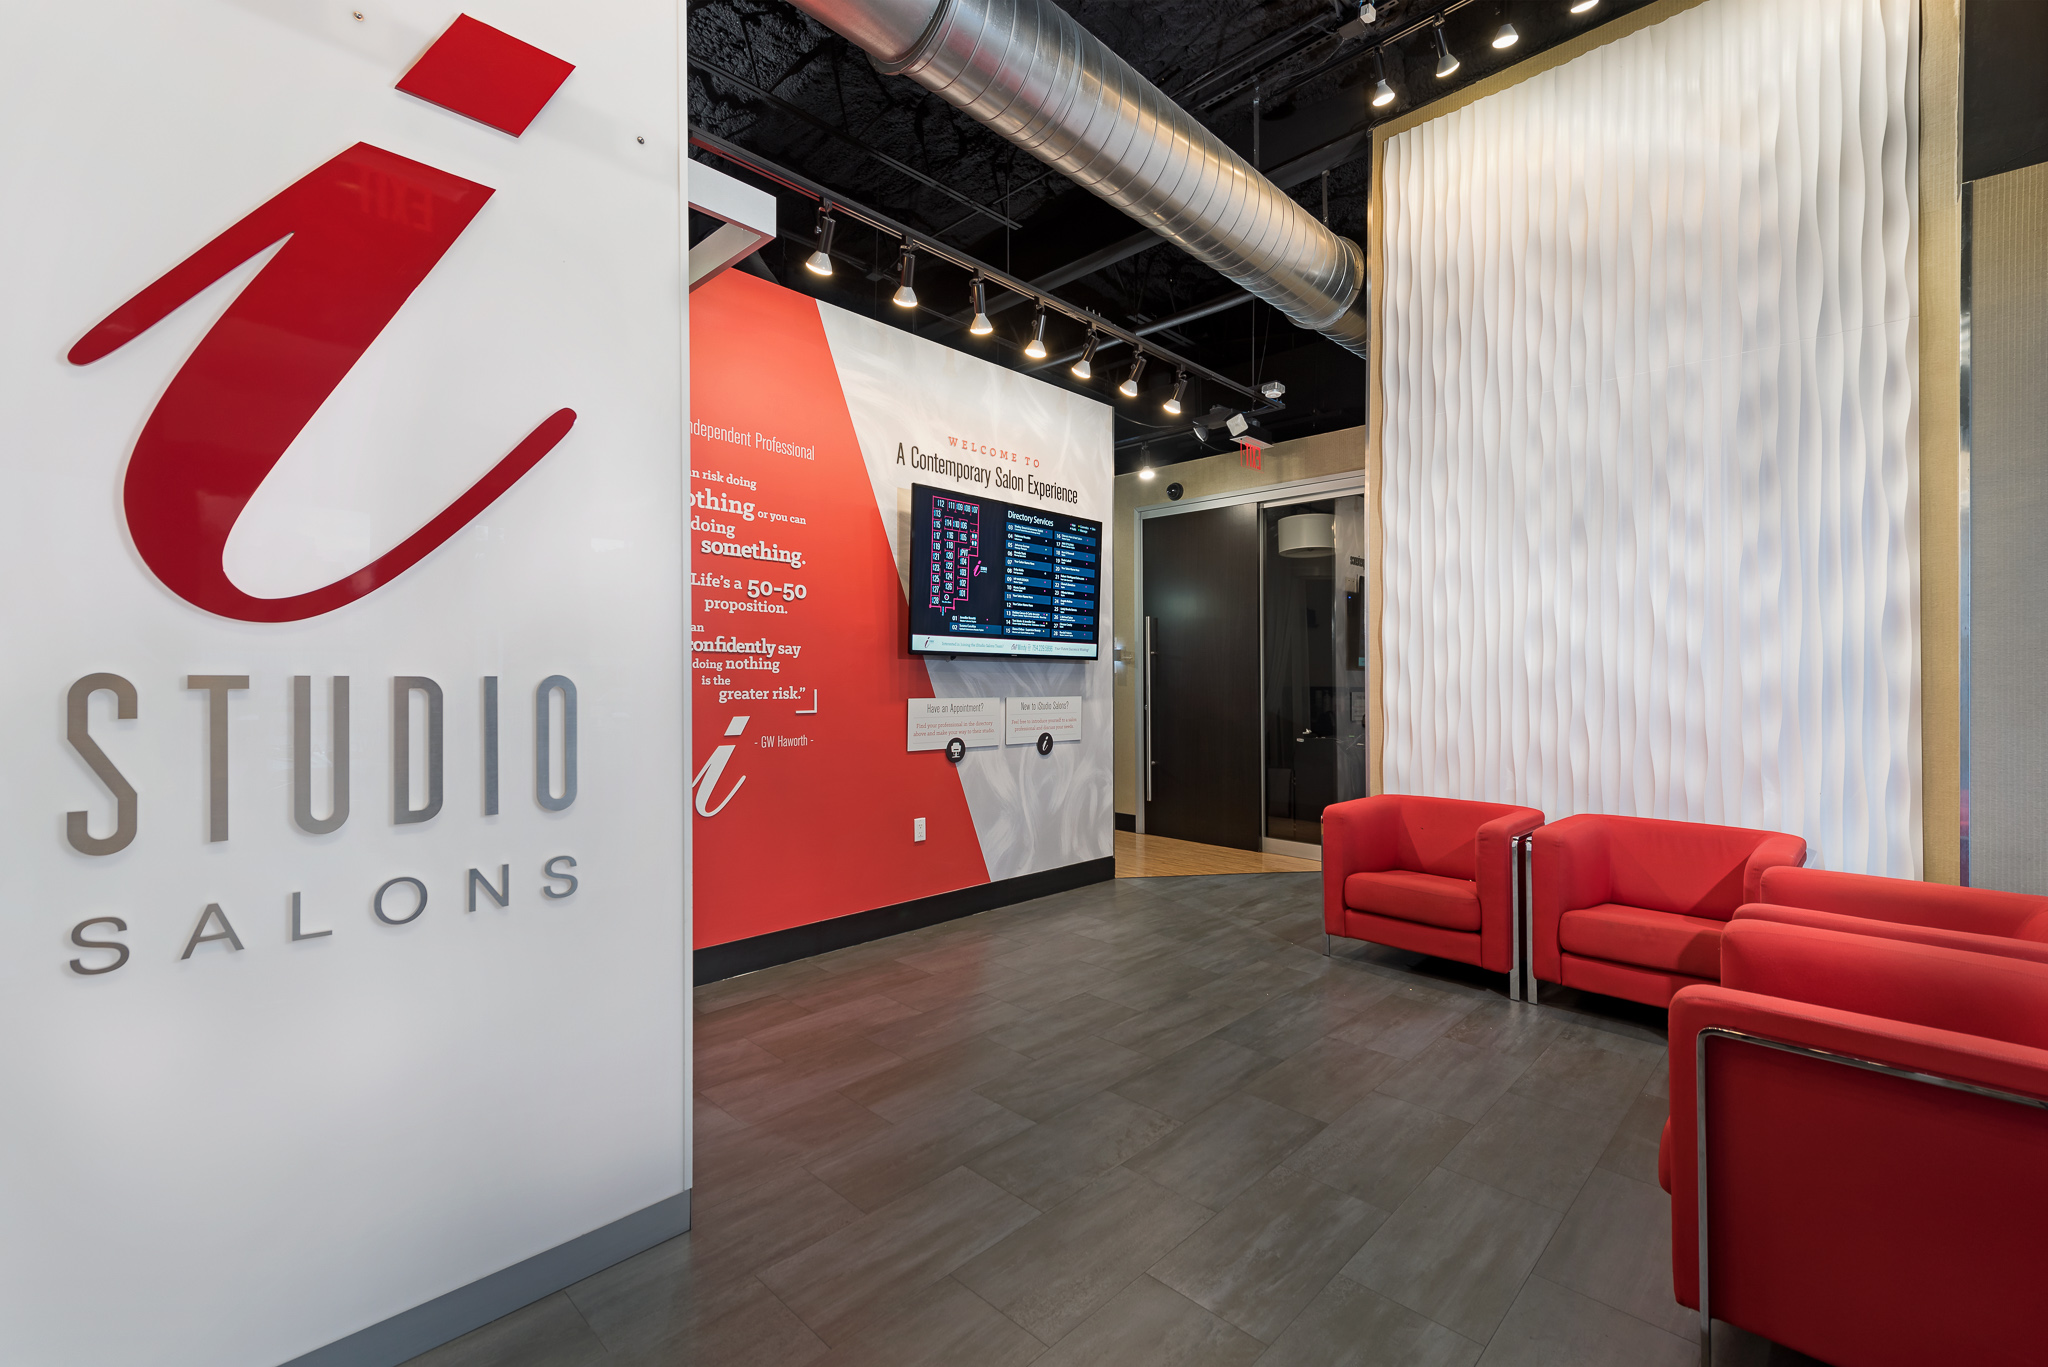 iStudio Salons Southport Fort Lauderdale Lobby